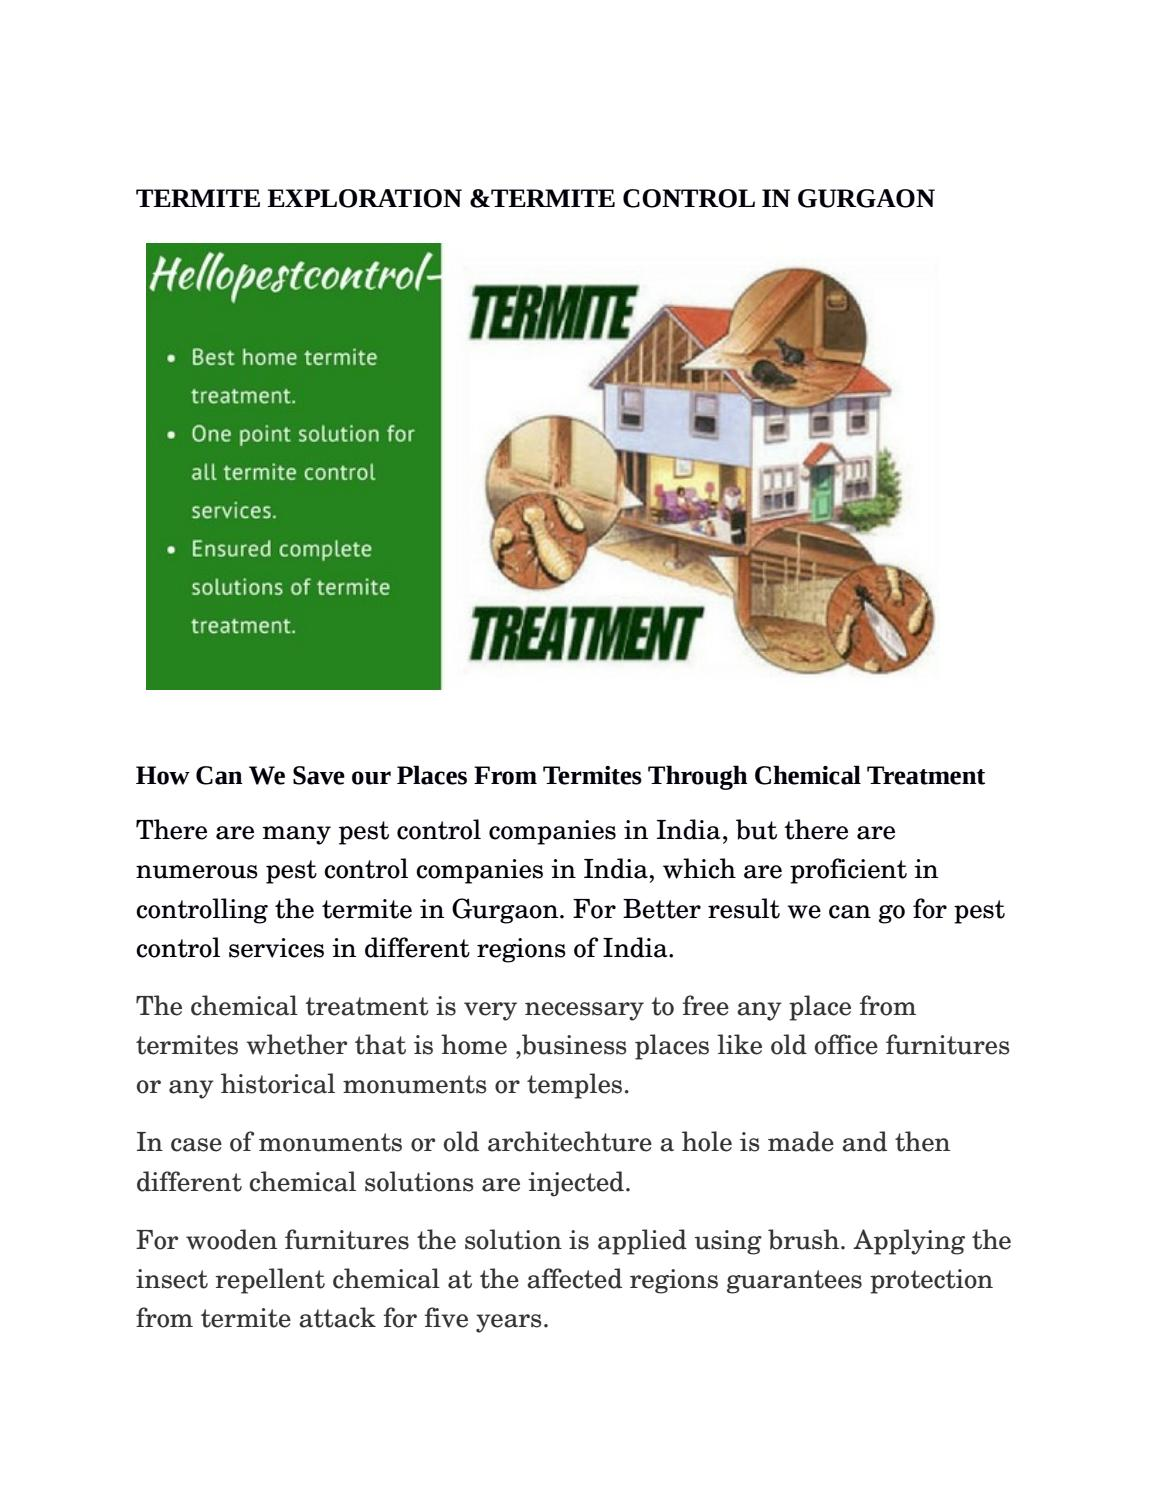 Pest Control Companies In India Termite Control In Gurgaon By Hellopestcontrol12 Issuu